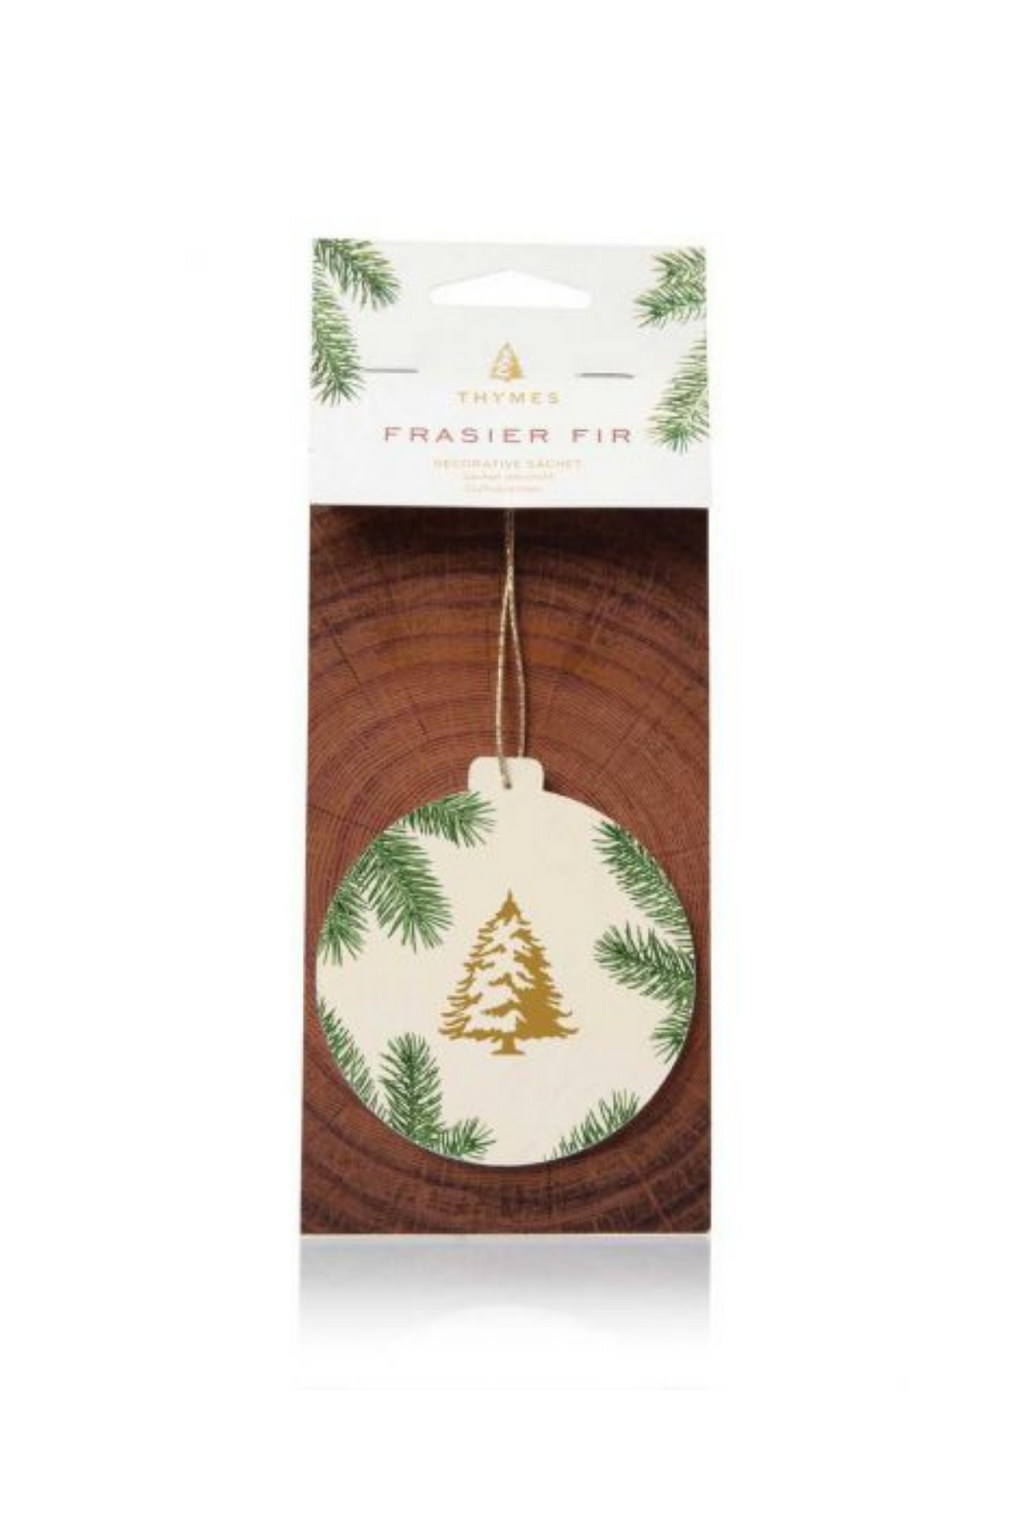 Thymes Decorative Sachet - Frasier Fir